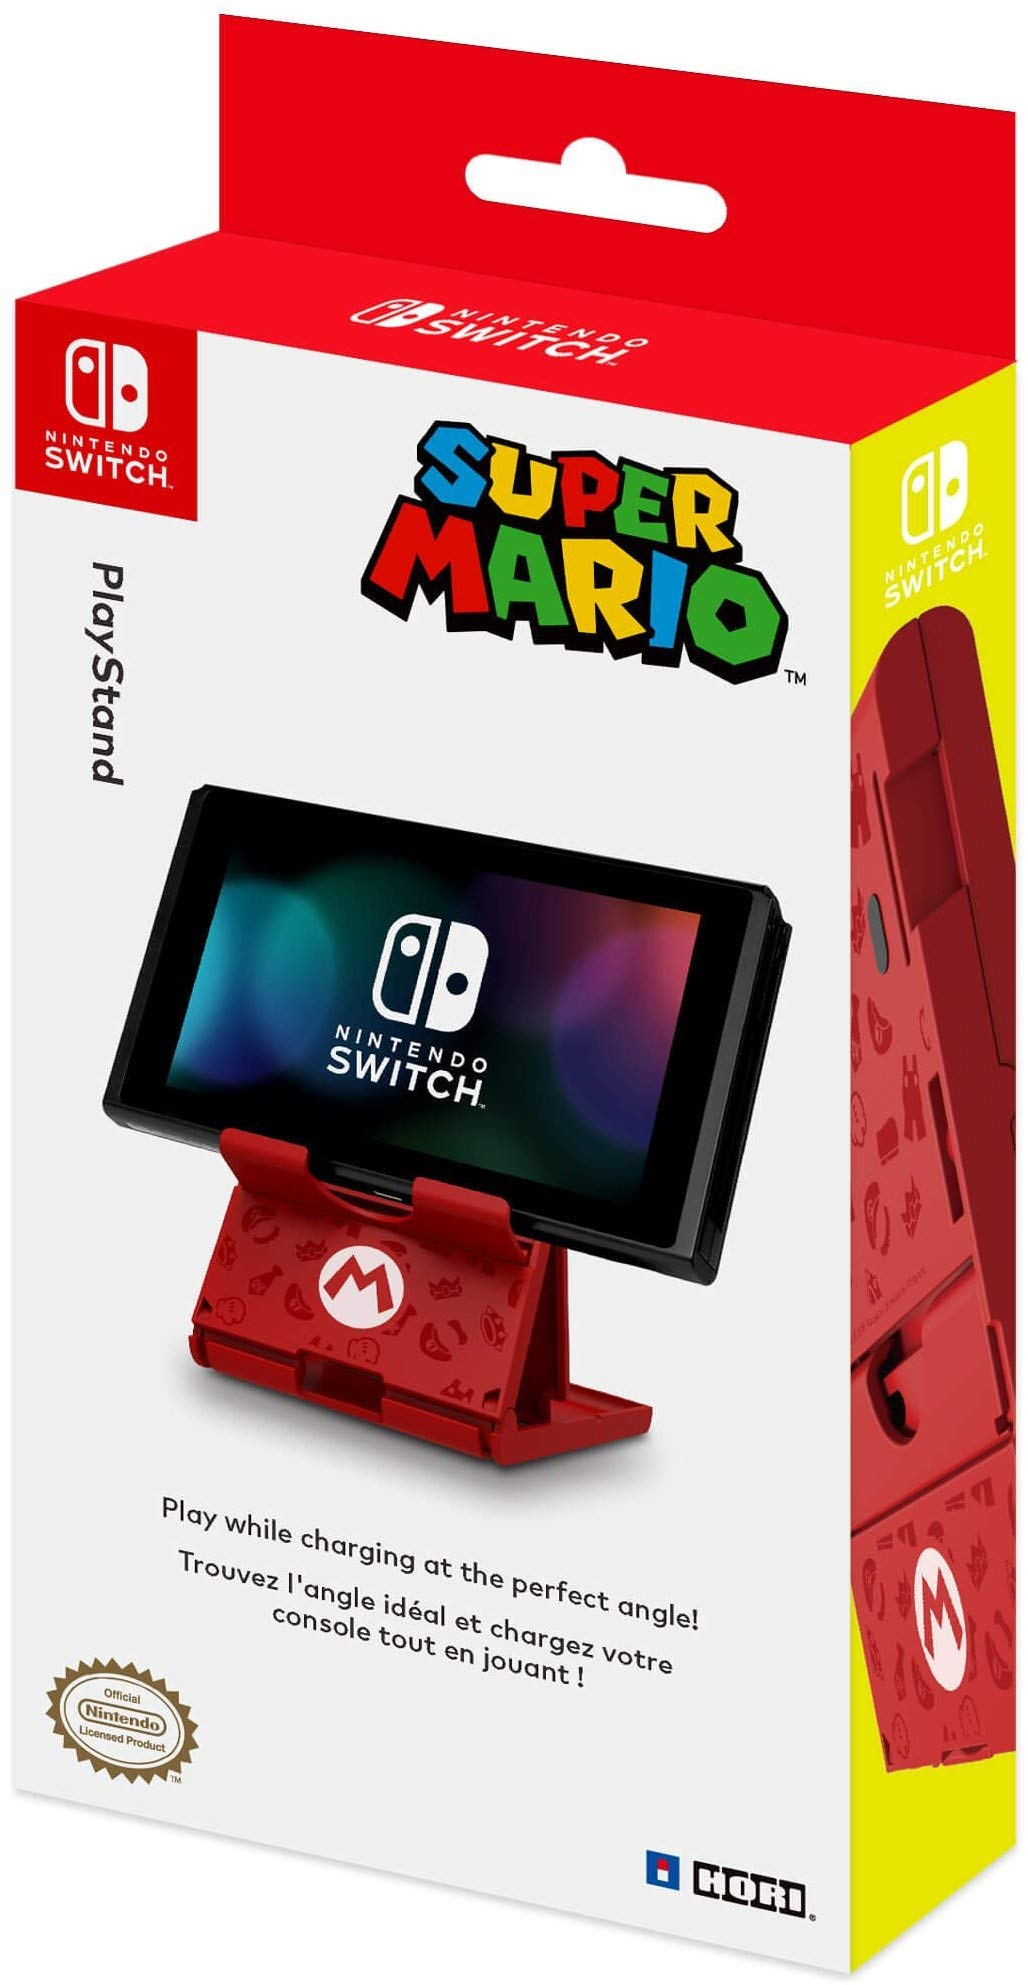 HORI Compact PlayStand - Mario Edition, Officially Licensed by Nintendo - Nintendo Switch by Hori